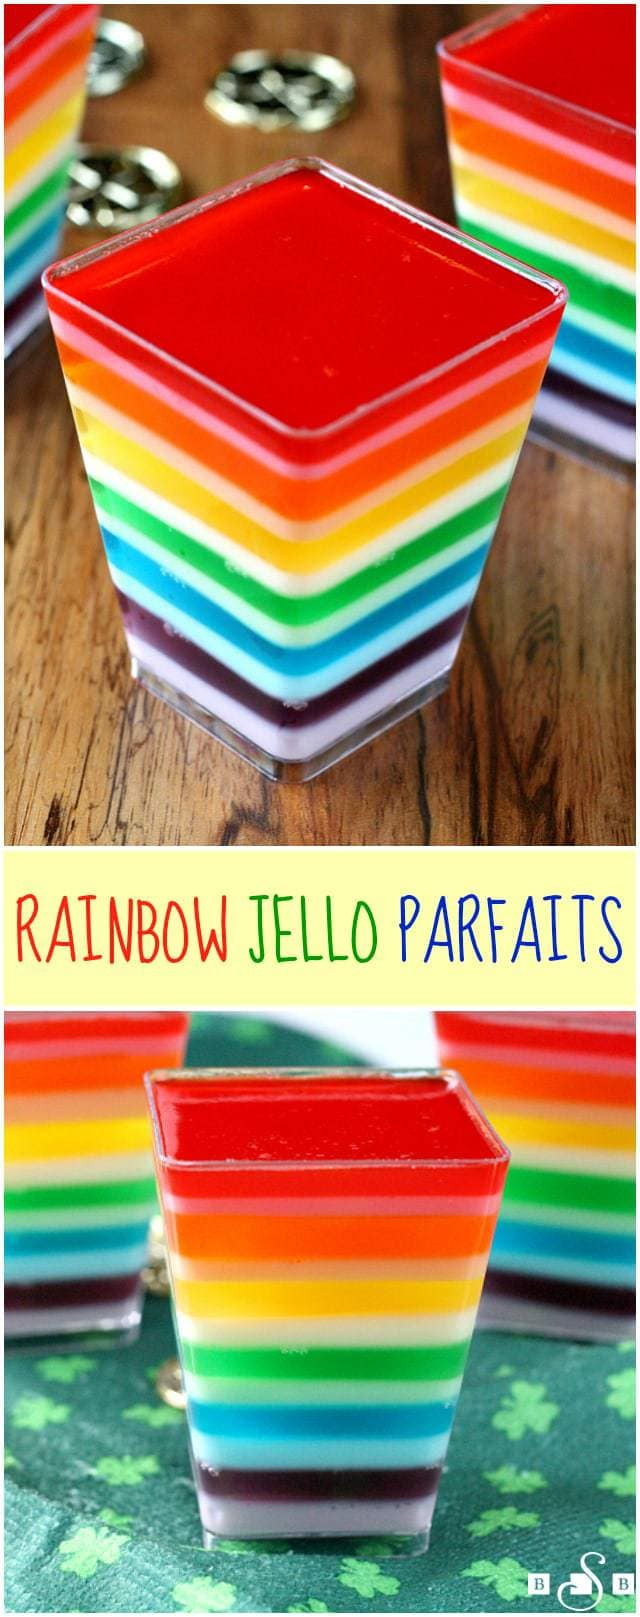 Rainbow Jello Parfaits are so festive and fun, especially for your kids on St. Patrick's Day! You only need two basic ingredients to make these...jello and yogurt! Jello dessert everyone loves!